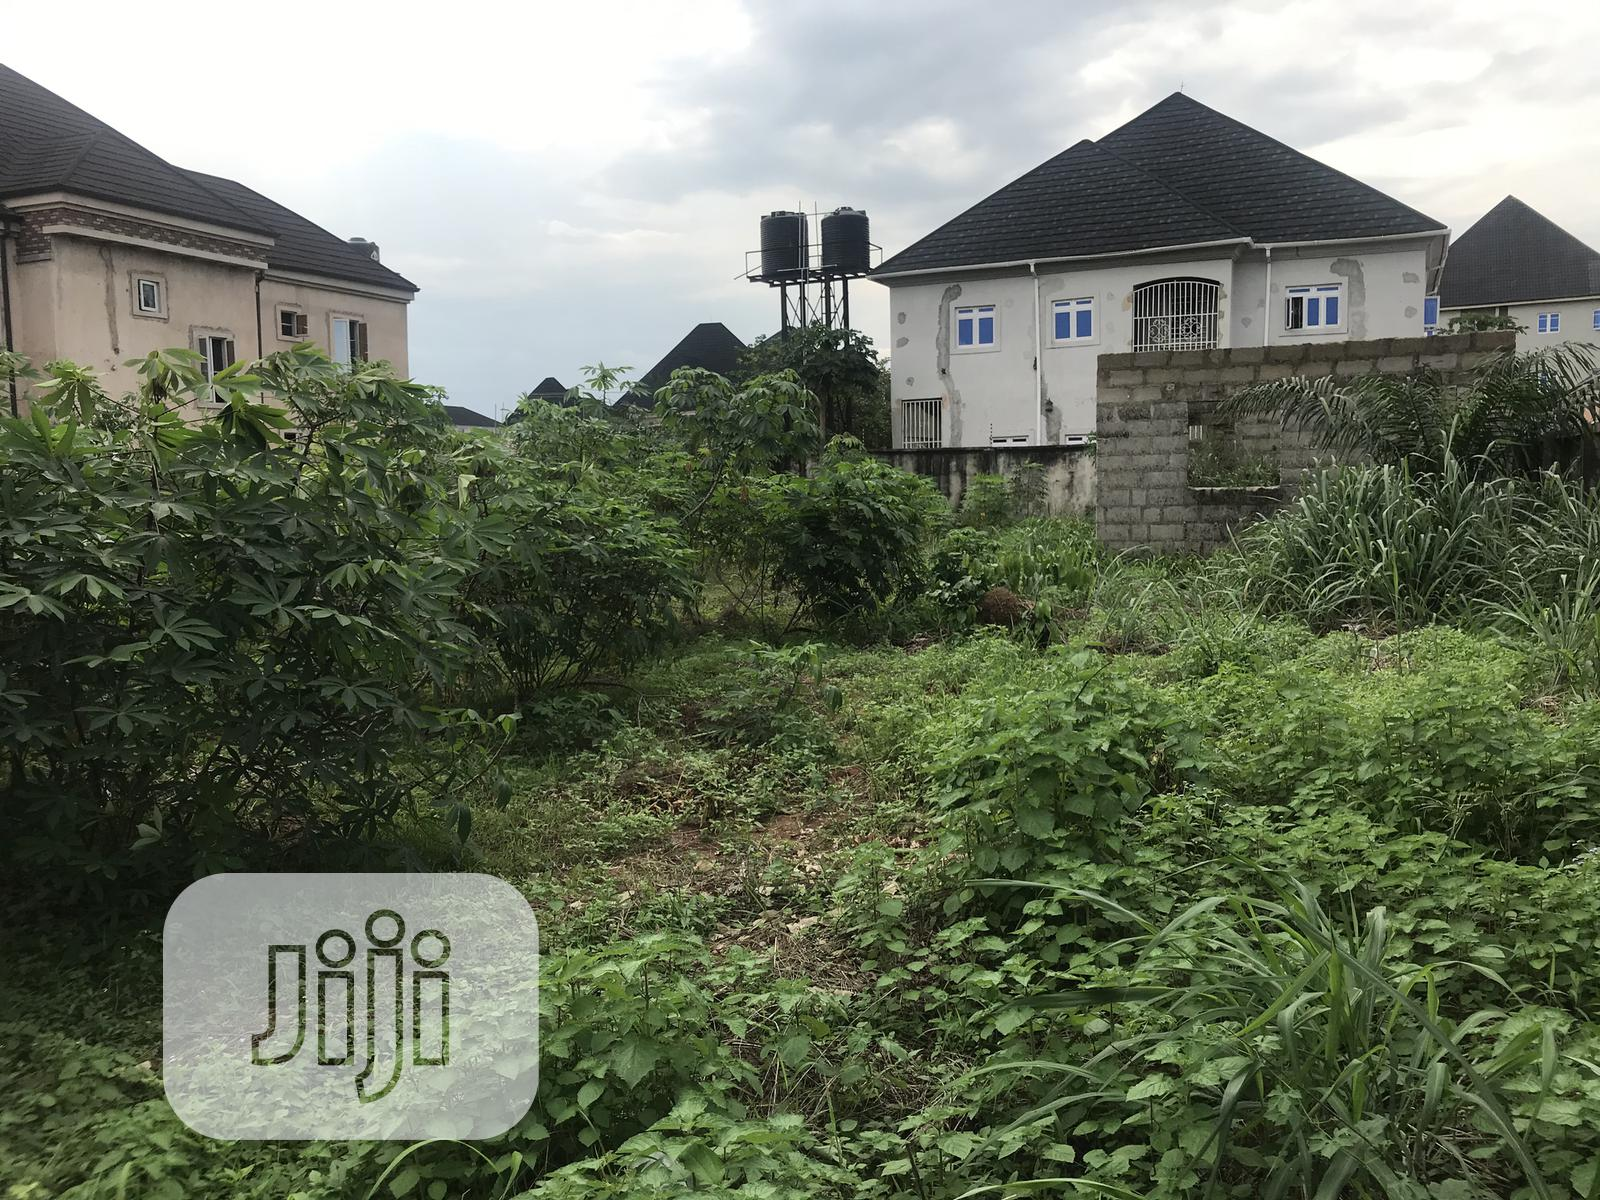 1000 Sq.Mtrs Of Land 1 Plot Off A Dual Lane | Land & Plots for Rent for sale in Owerri, Imo State, Nigeria